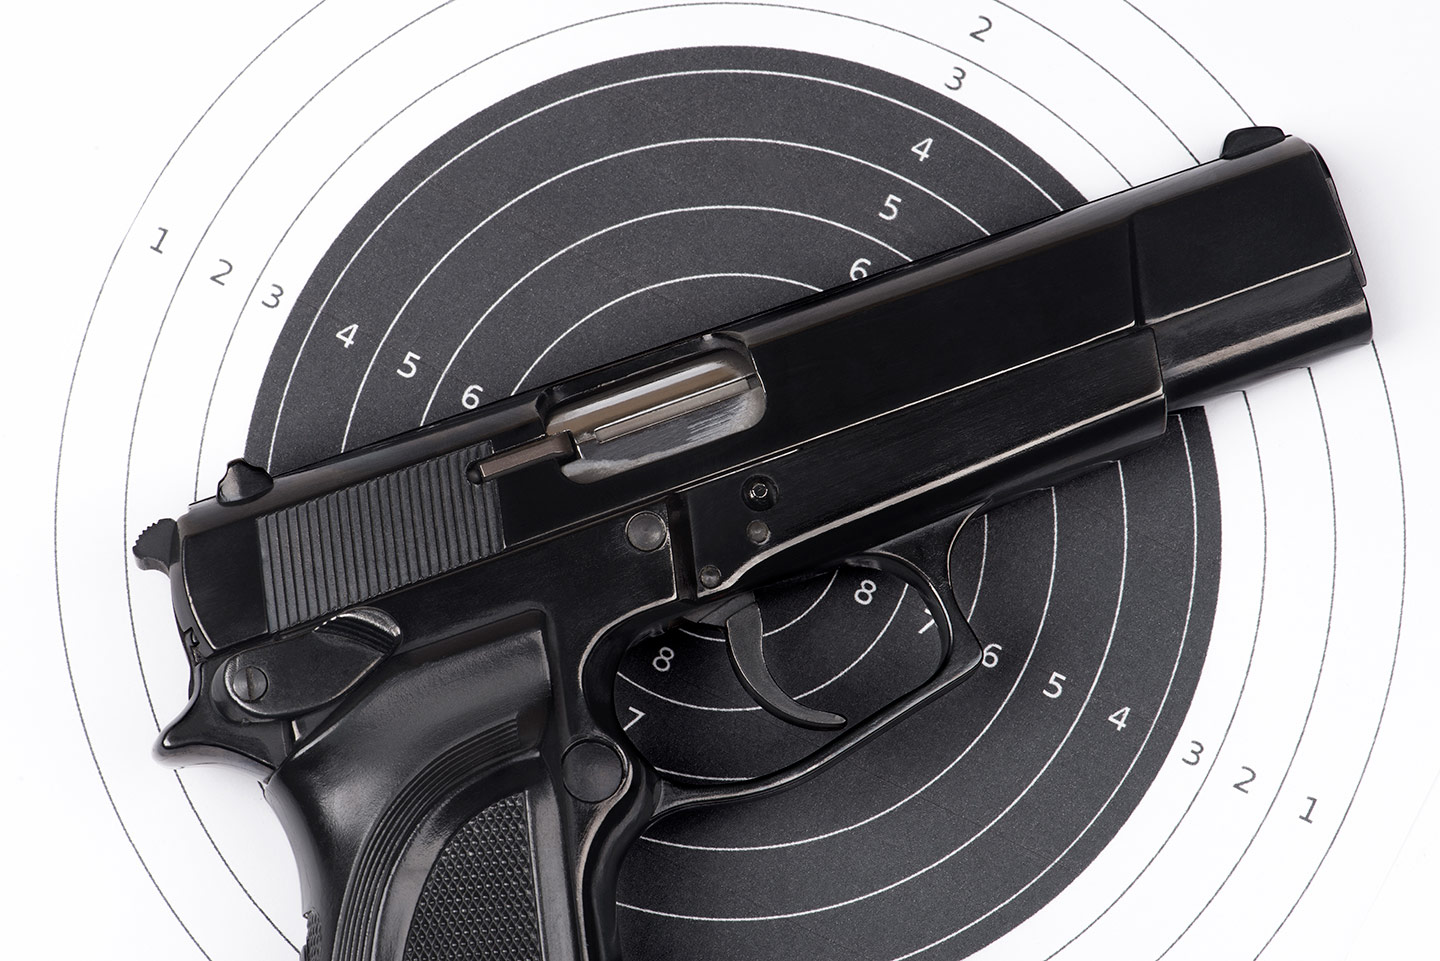 Restricted Firearm Safety